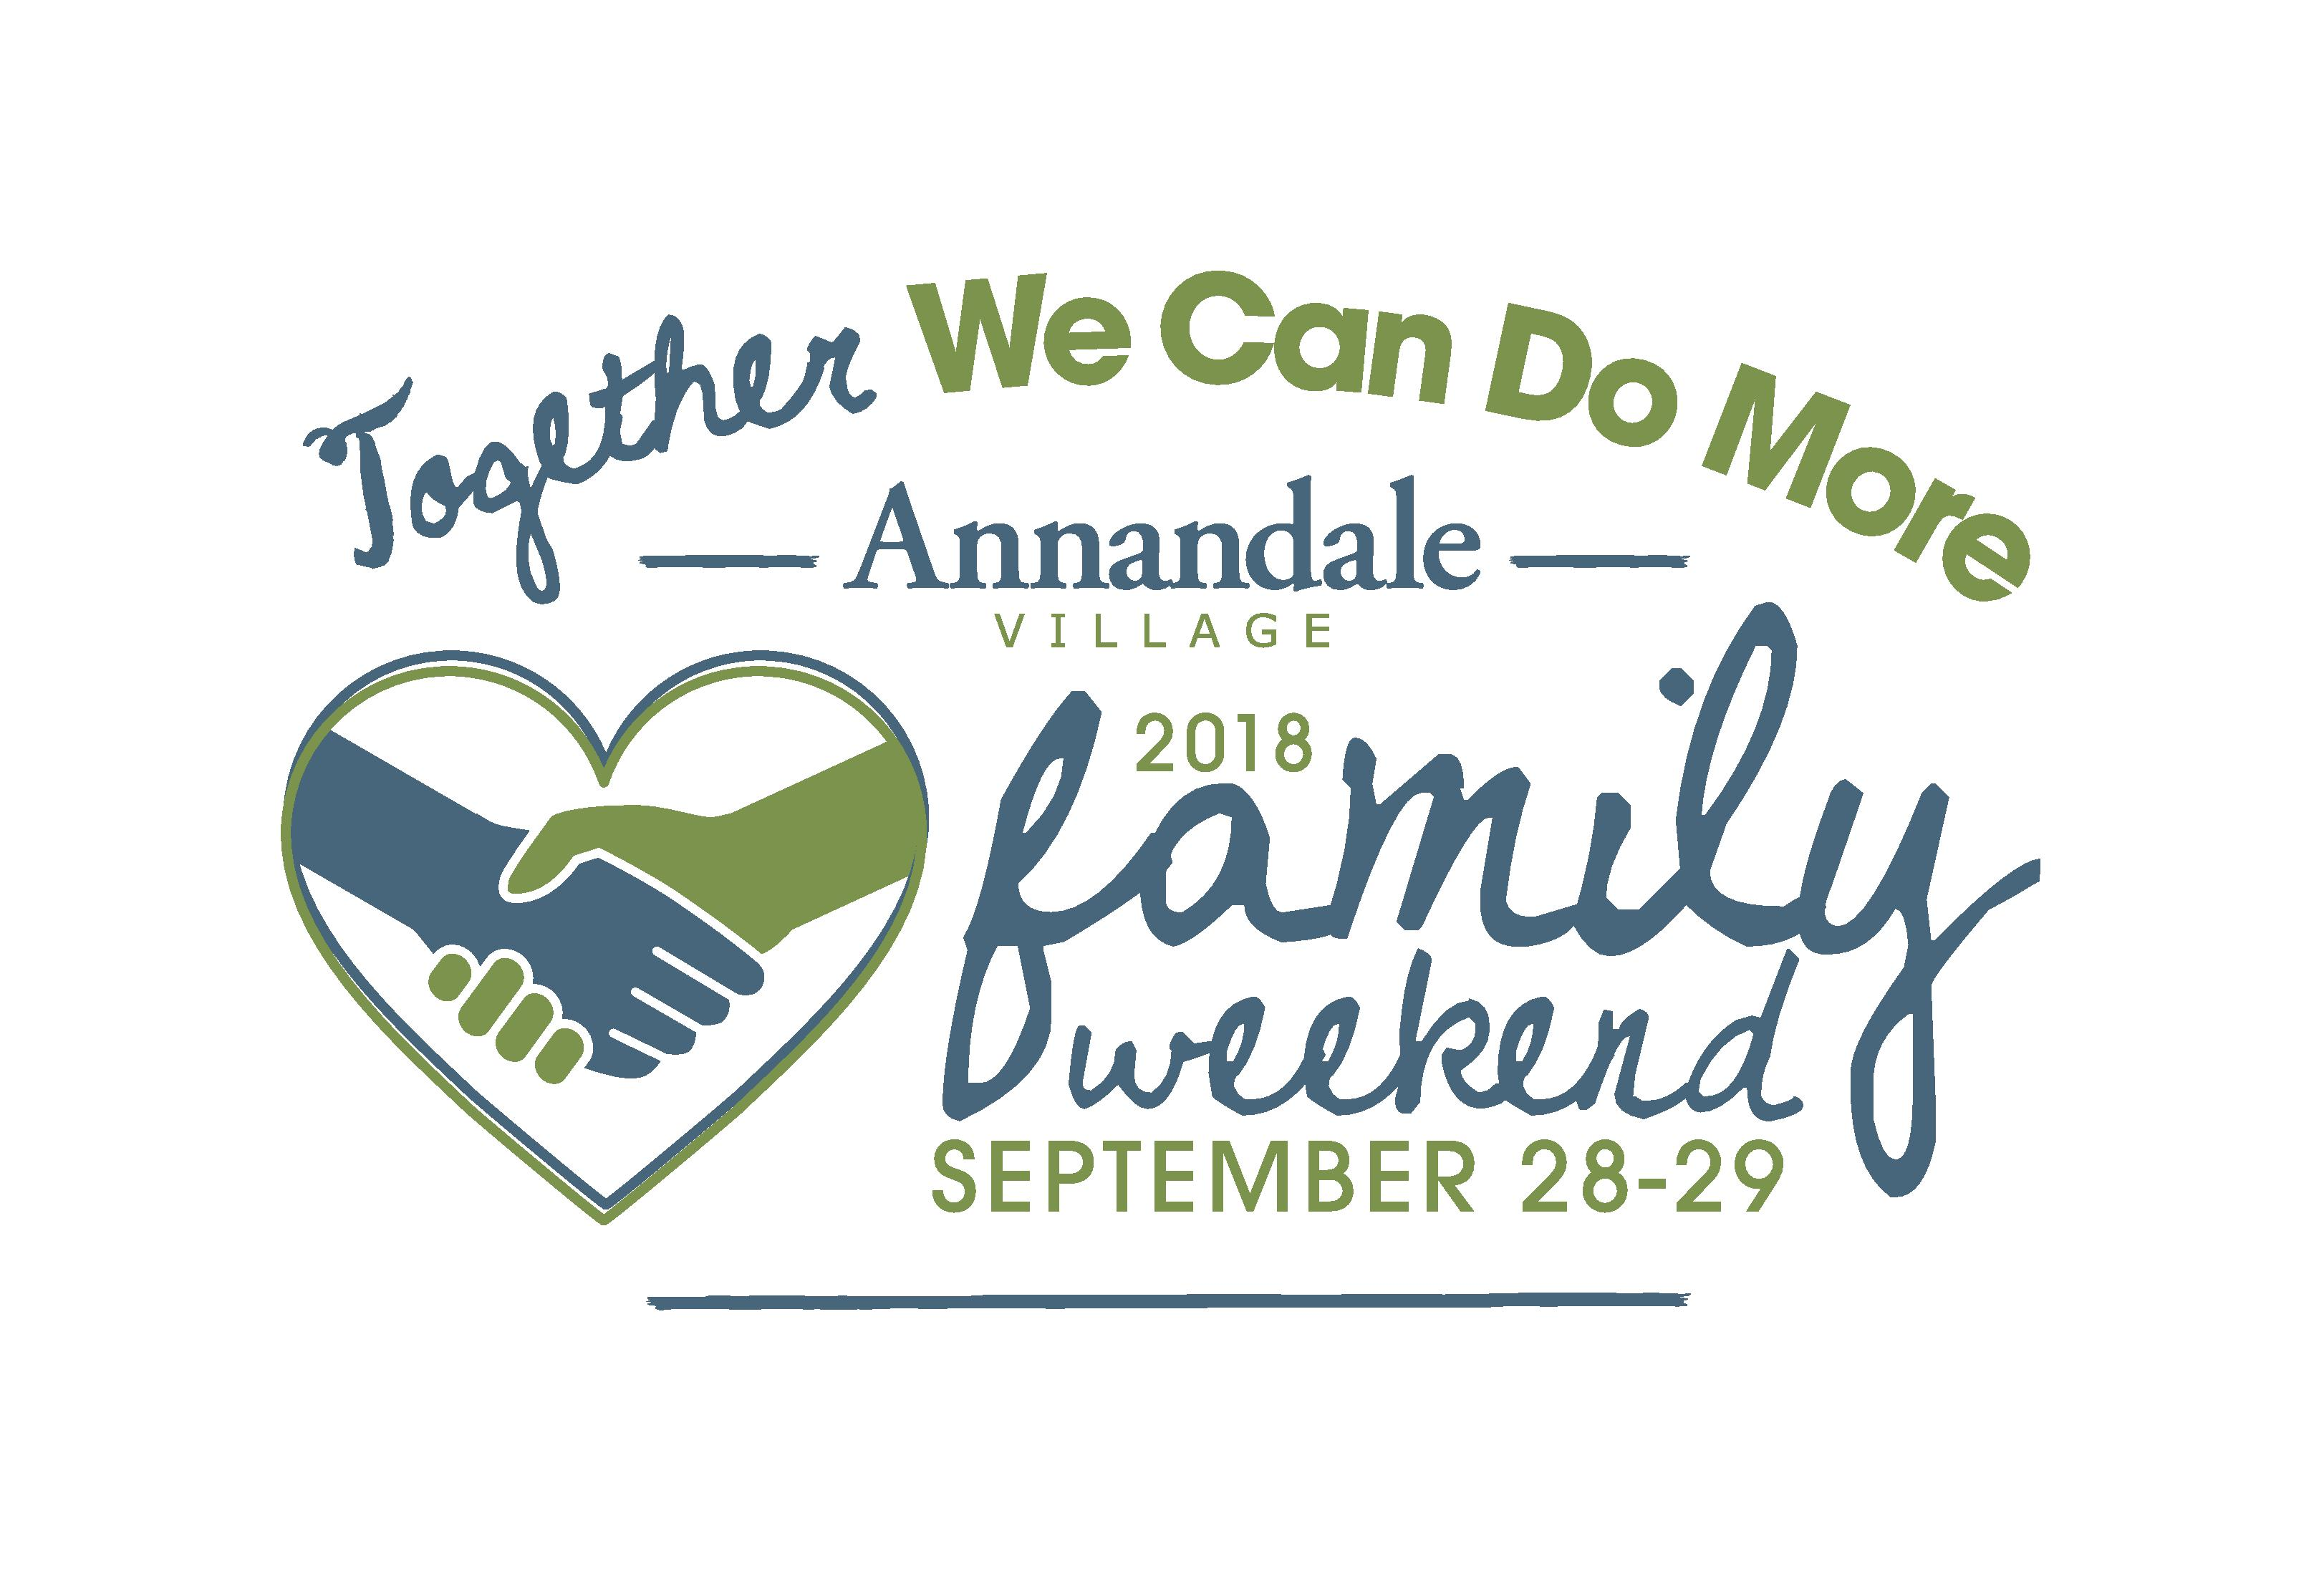 Final family weekend 2018 logo page 001